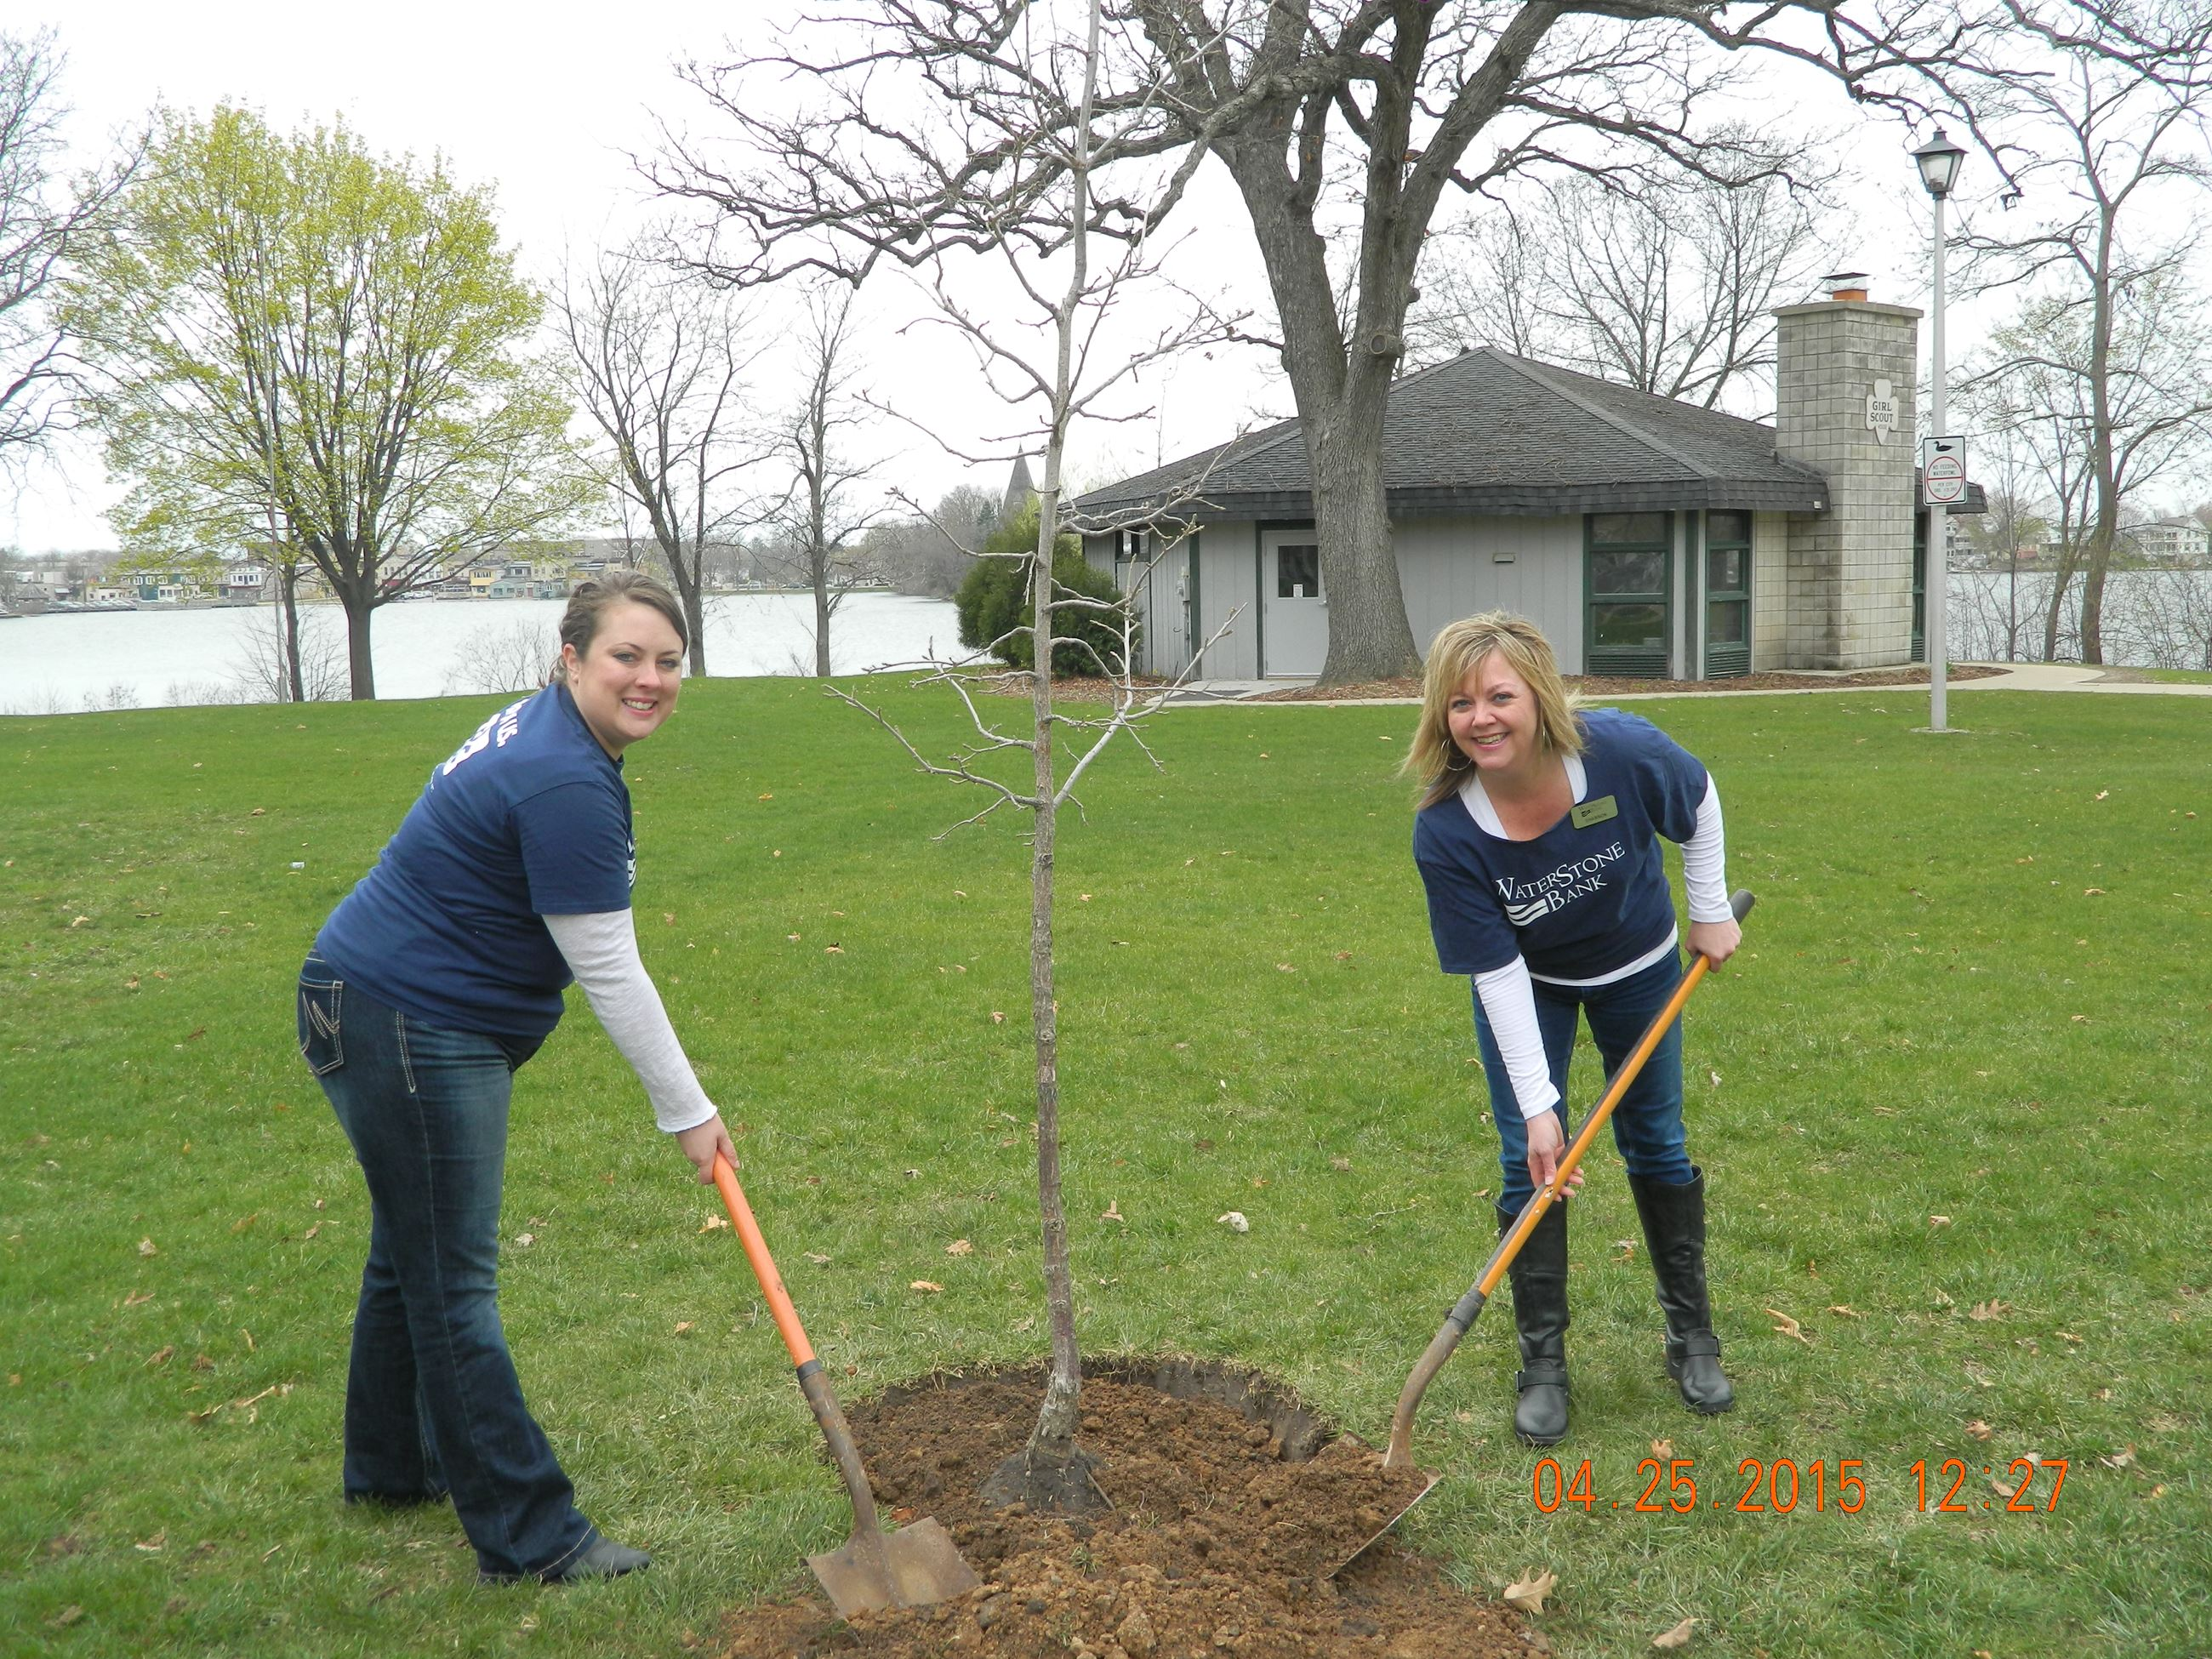 2015-04-25 Waterstone Bank Arbor Day Tree Donation (2)